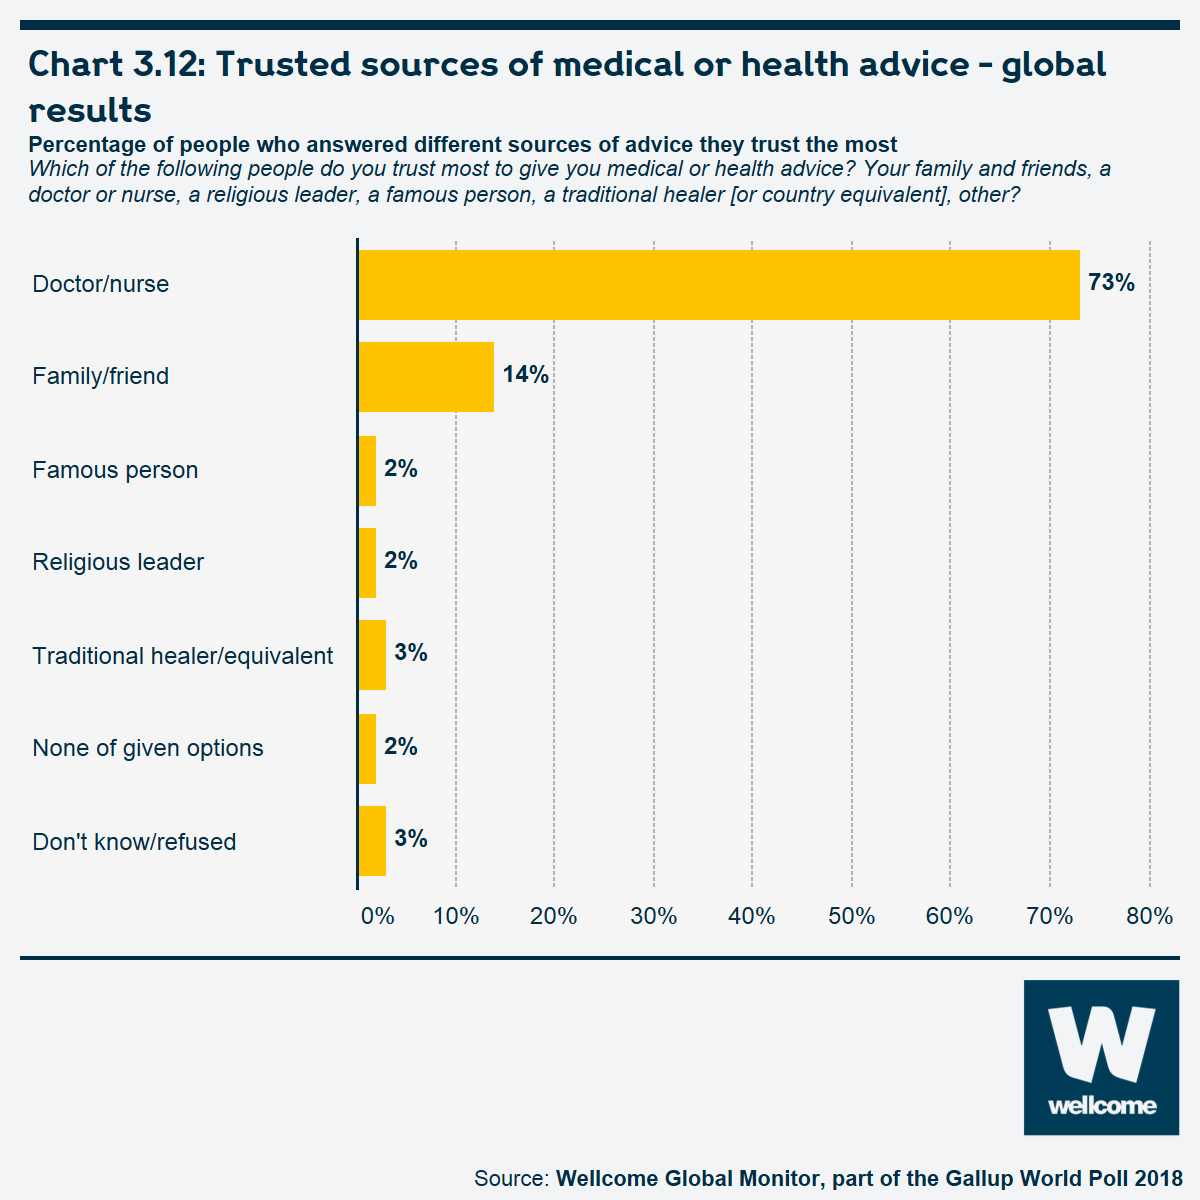 Chart 3.12 Trusted sources of medical or health advice - global results